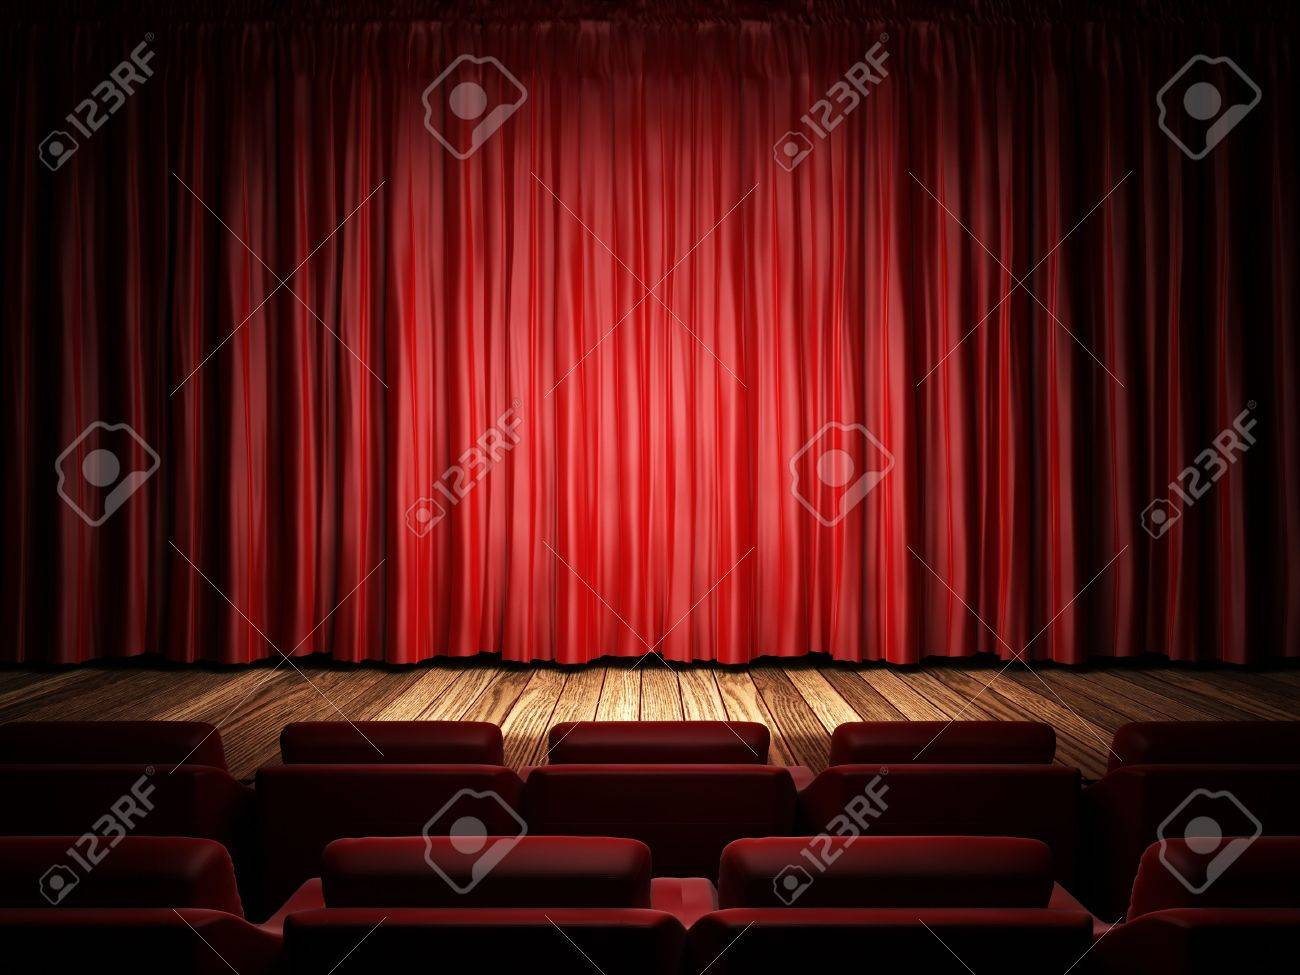 Stock photo dramatic red old fashioned elegant theater stage stock - Stage Curtain Red Fabric Curtain On Stage Stock Photo